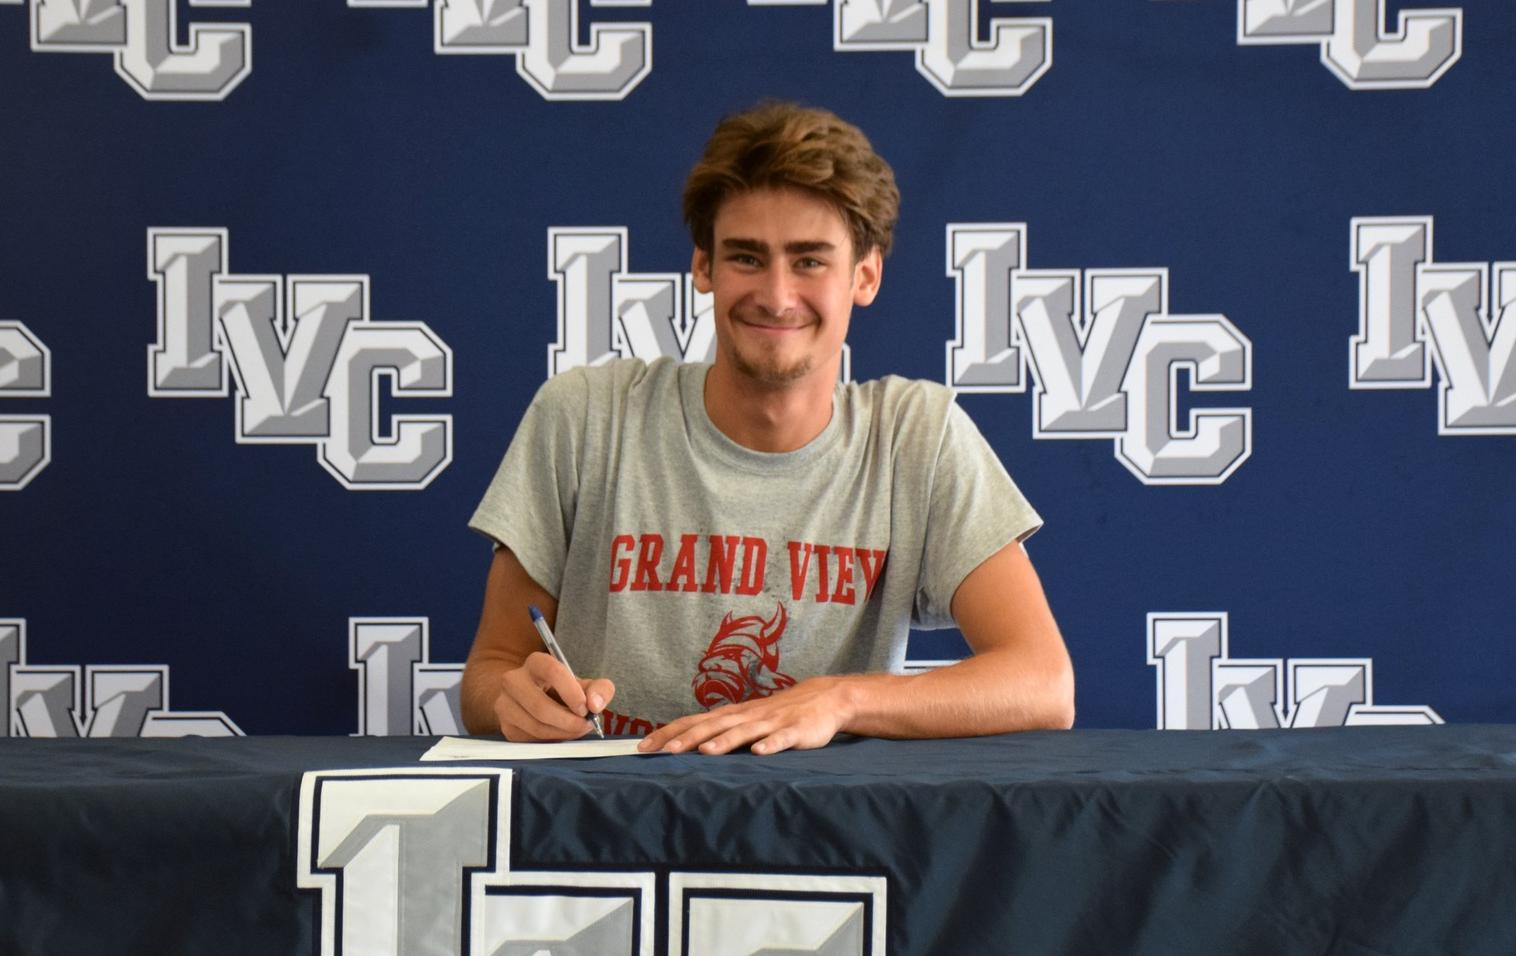 Men's volleyball player Pat Furlong headed to Grand Valley